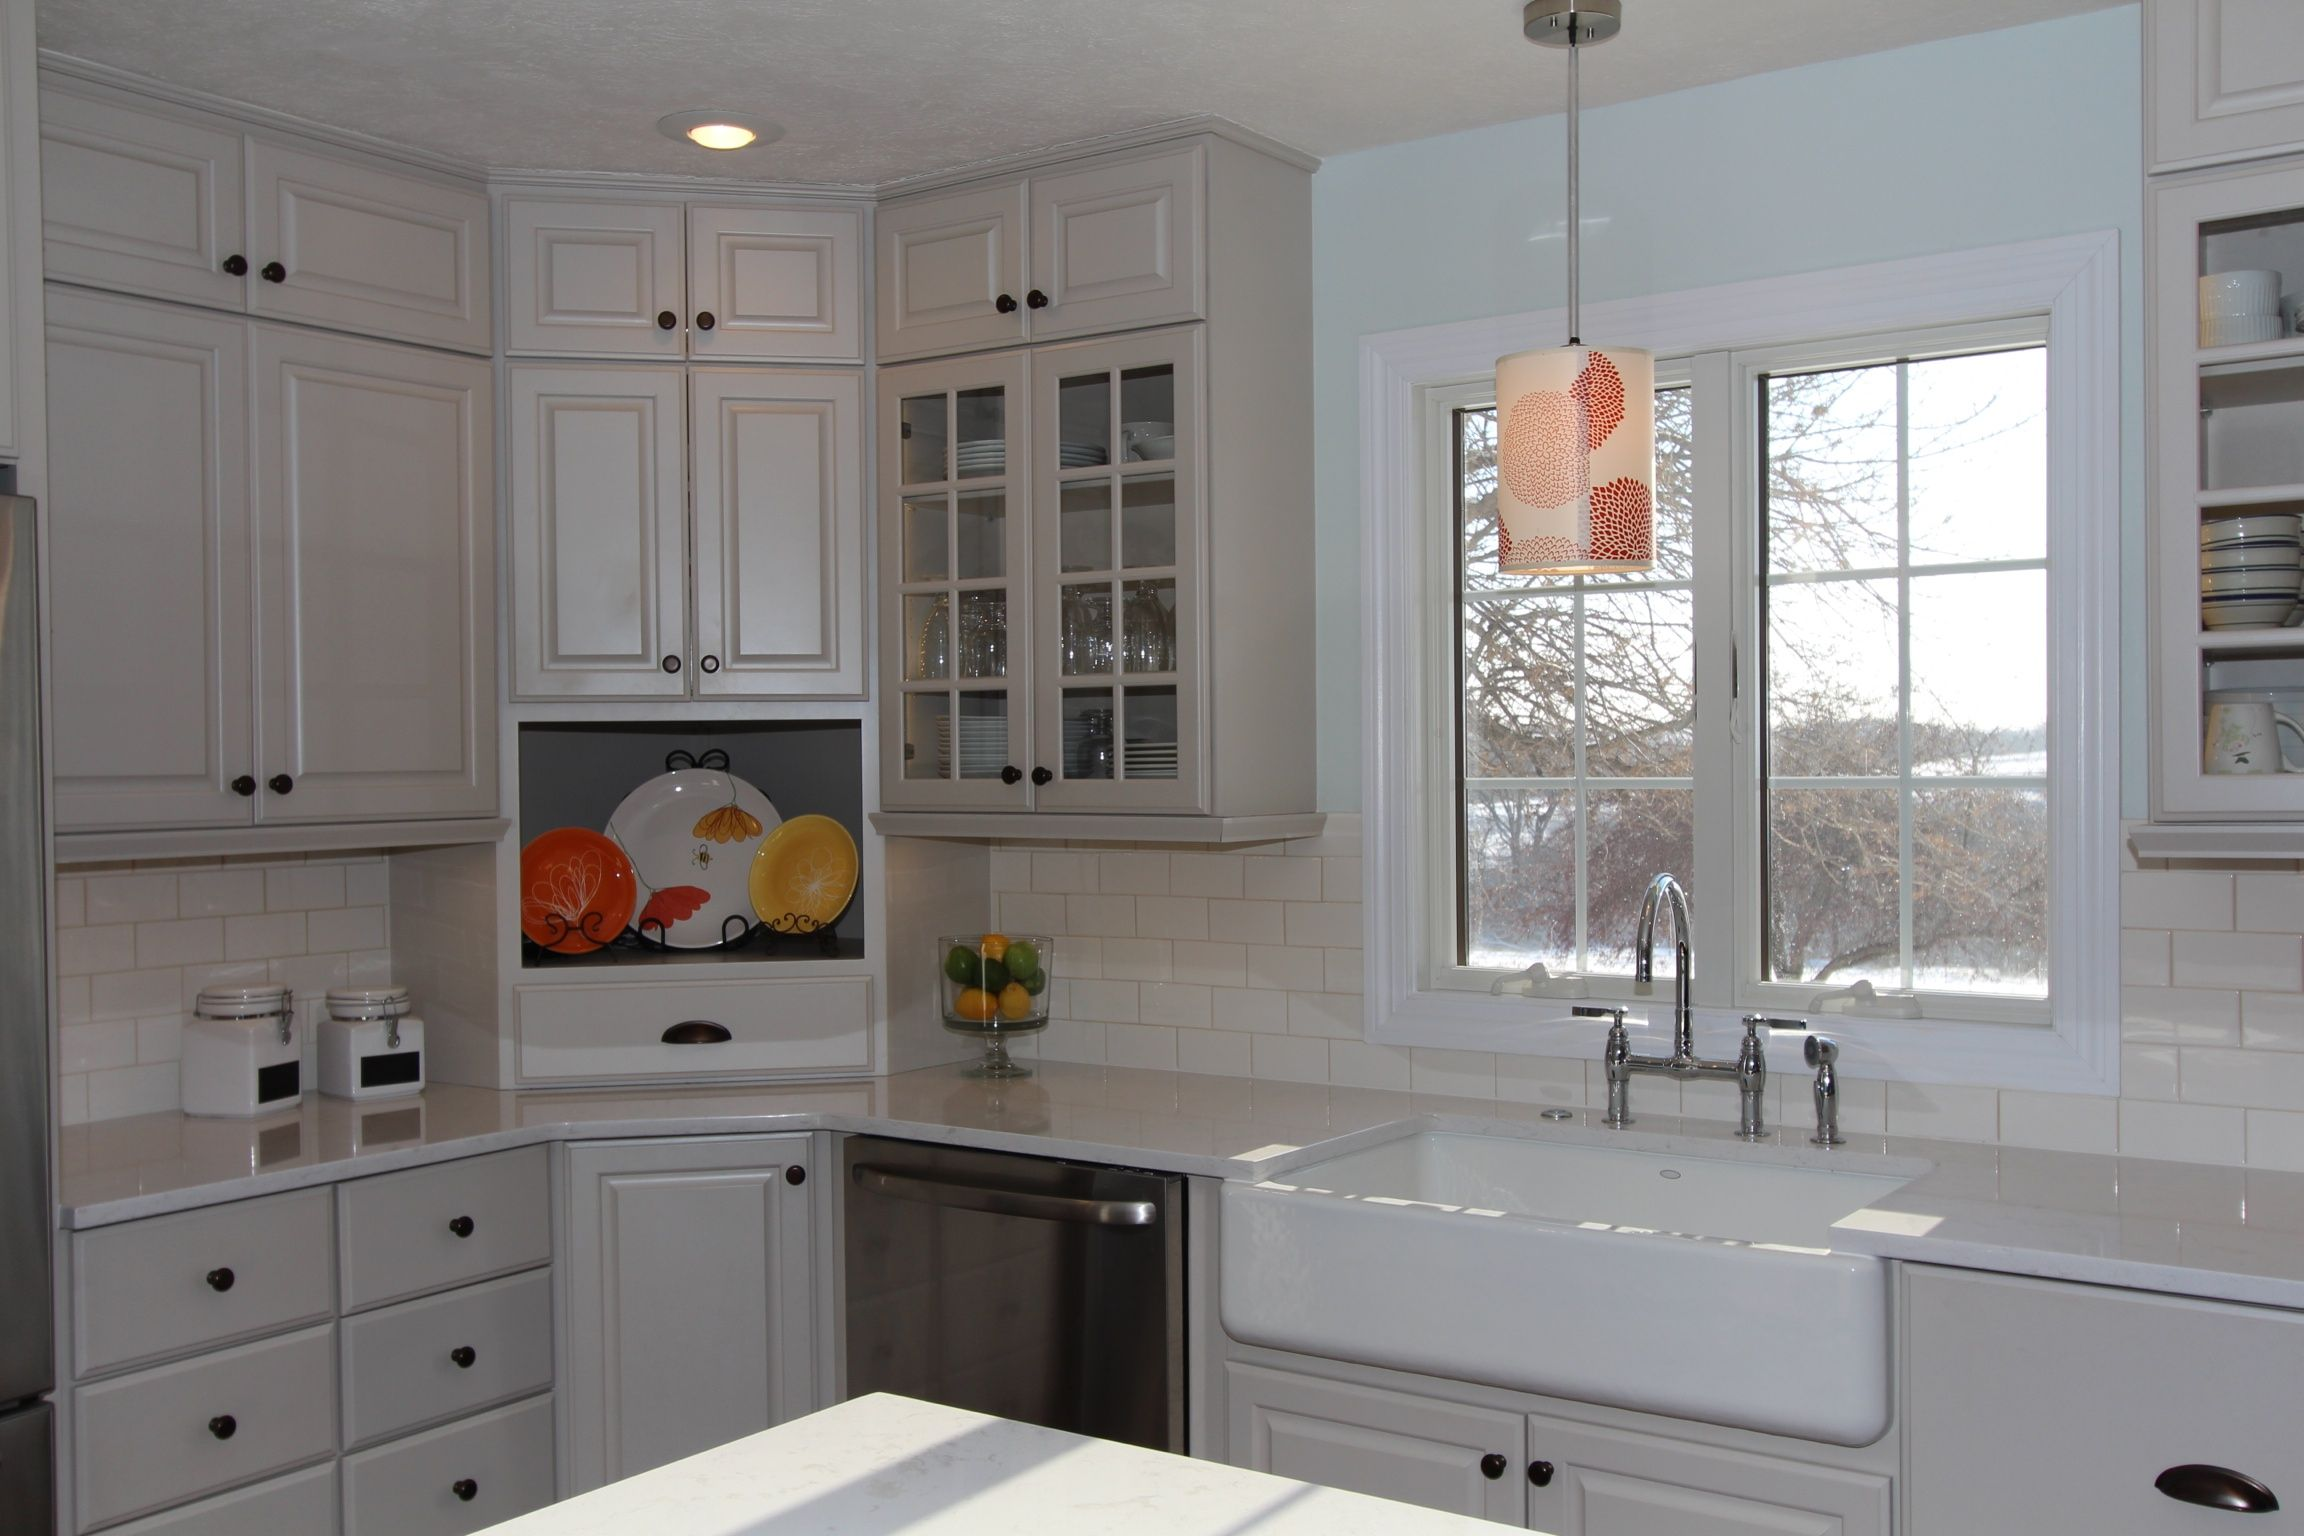 Omega Custom Magnolia Ice Cabinets Led Lighting Is Mounted In The Trim Under Cabinetry